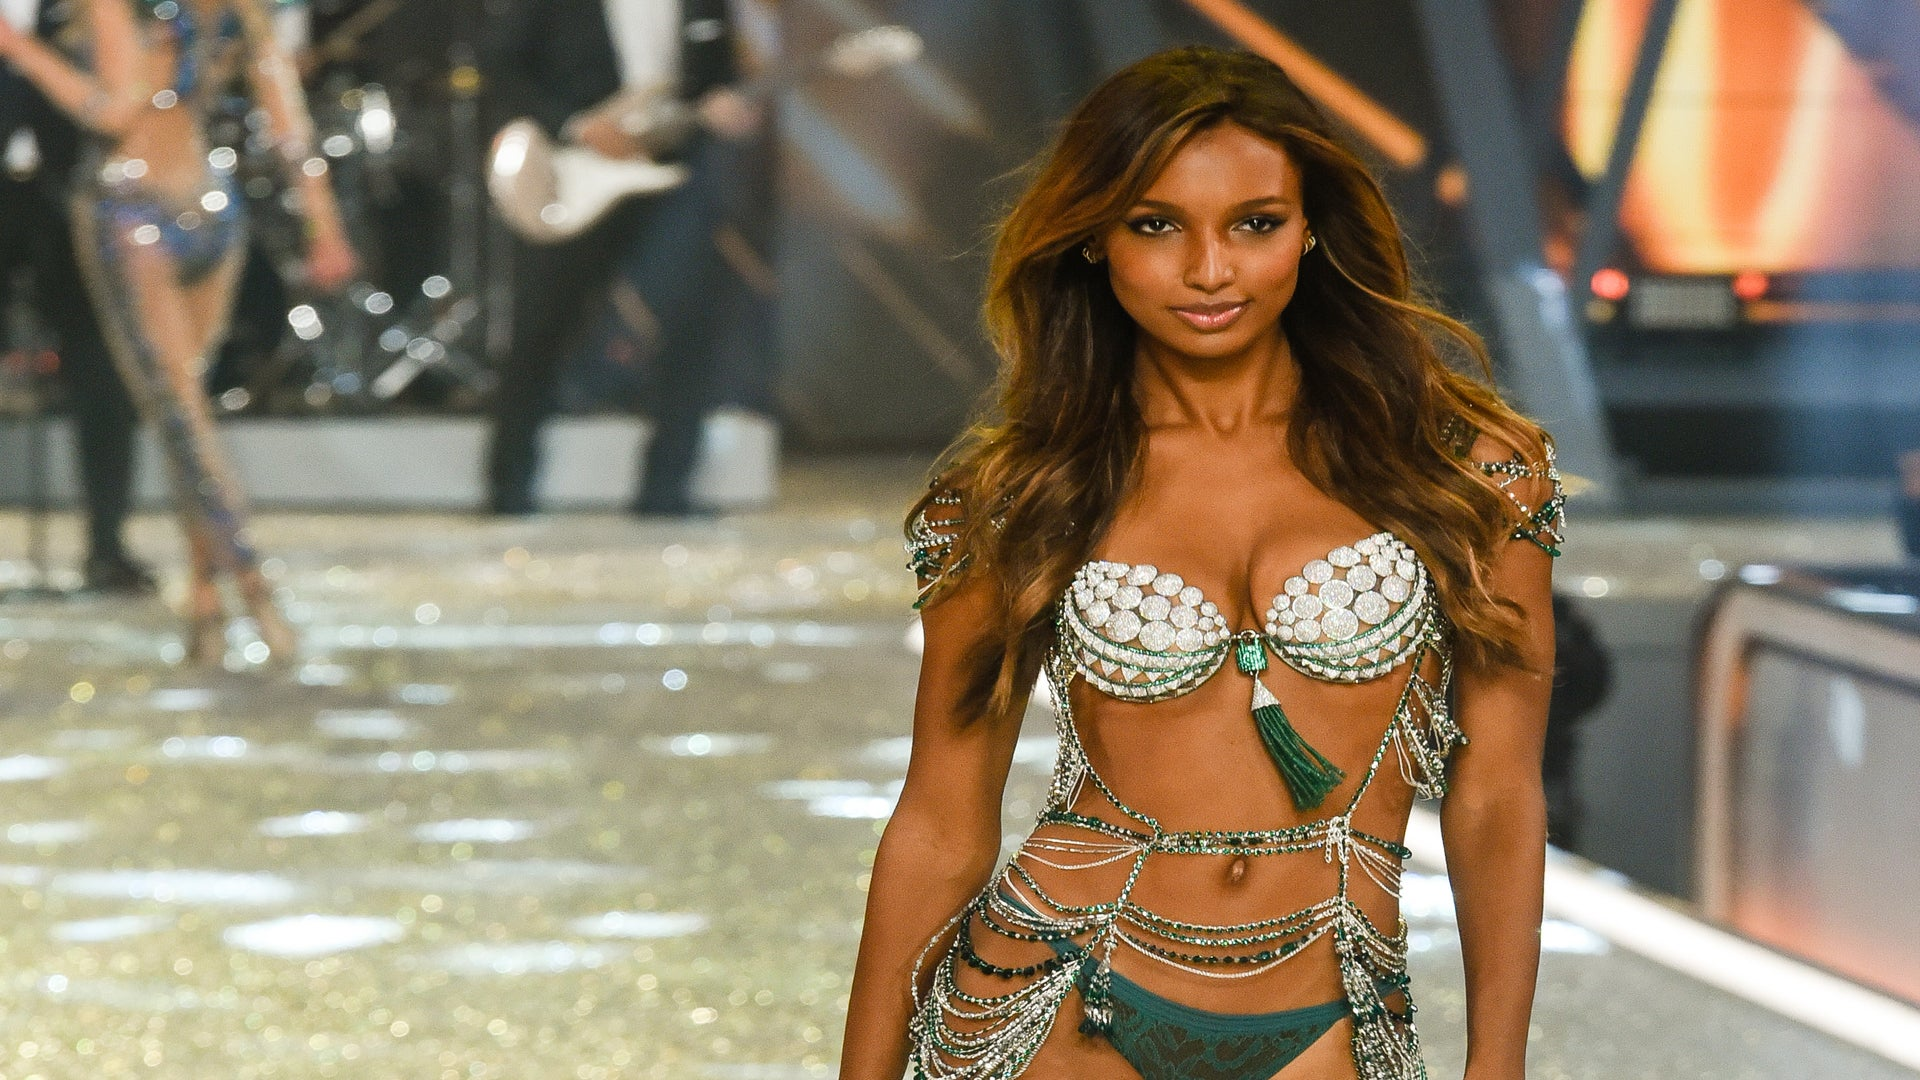 Victoria's Secret Launches New Scent, 'Bombshell'